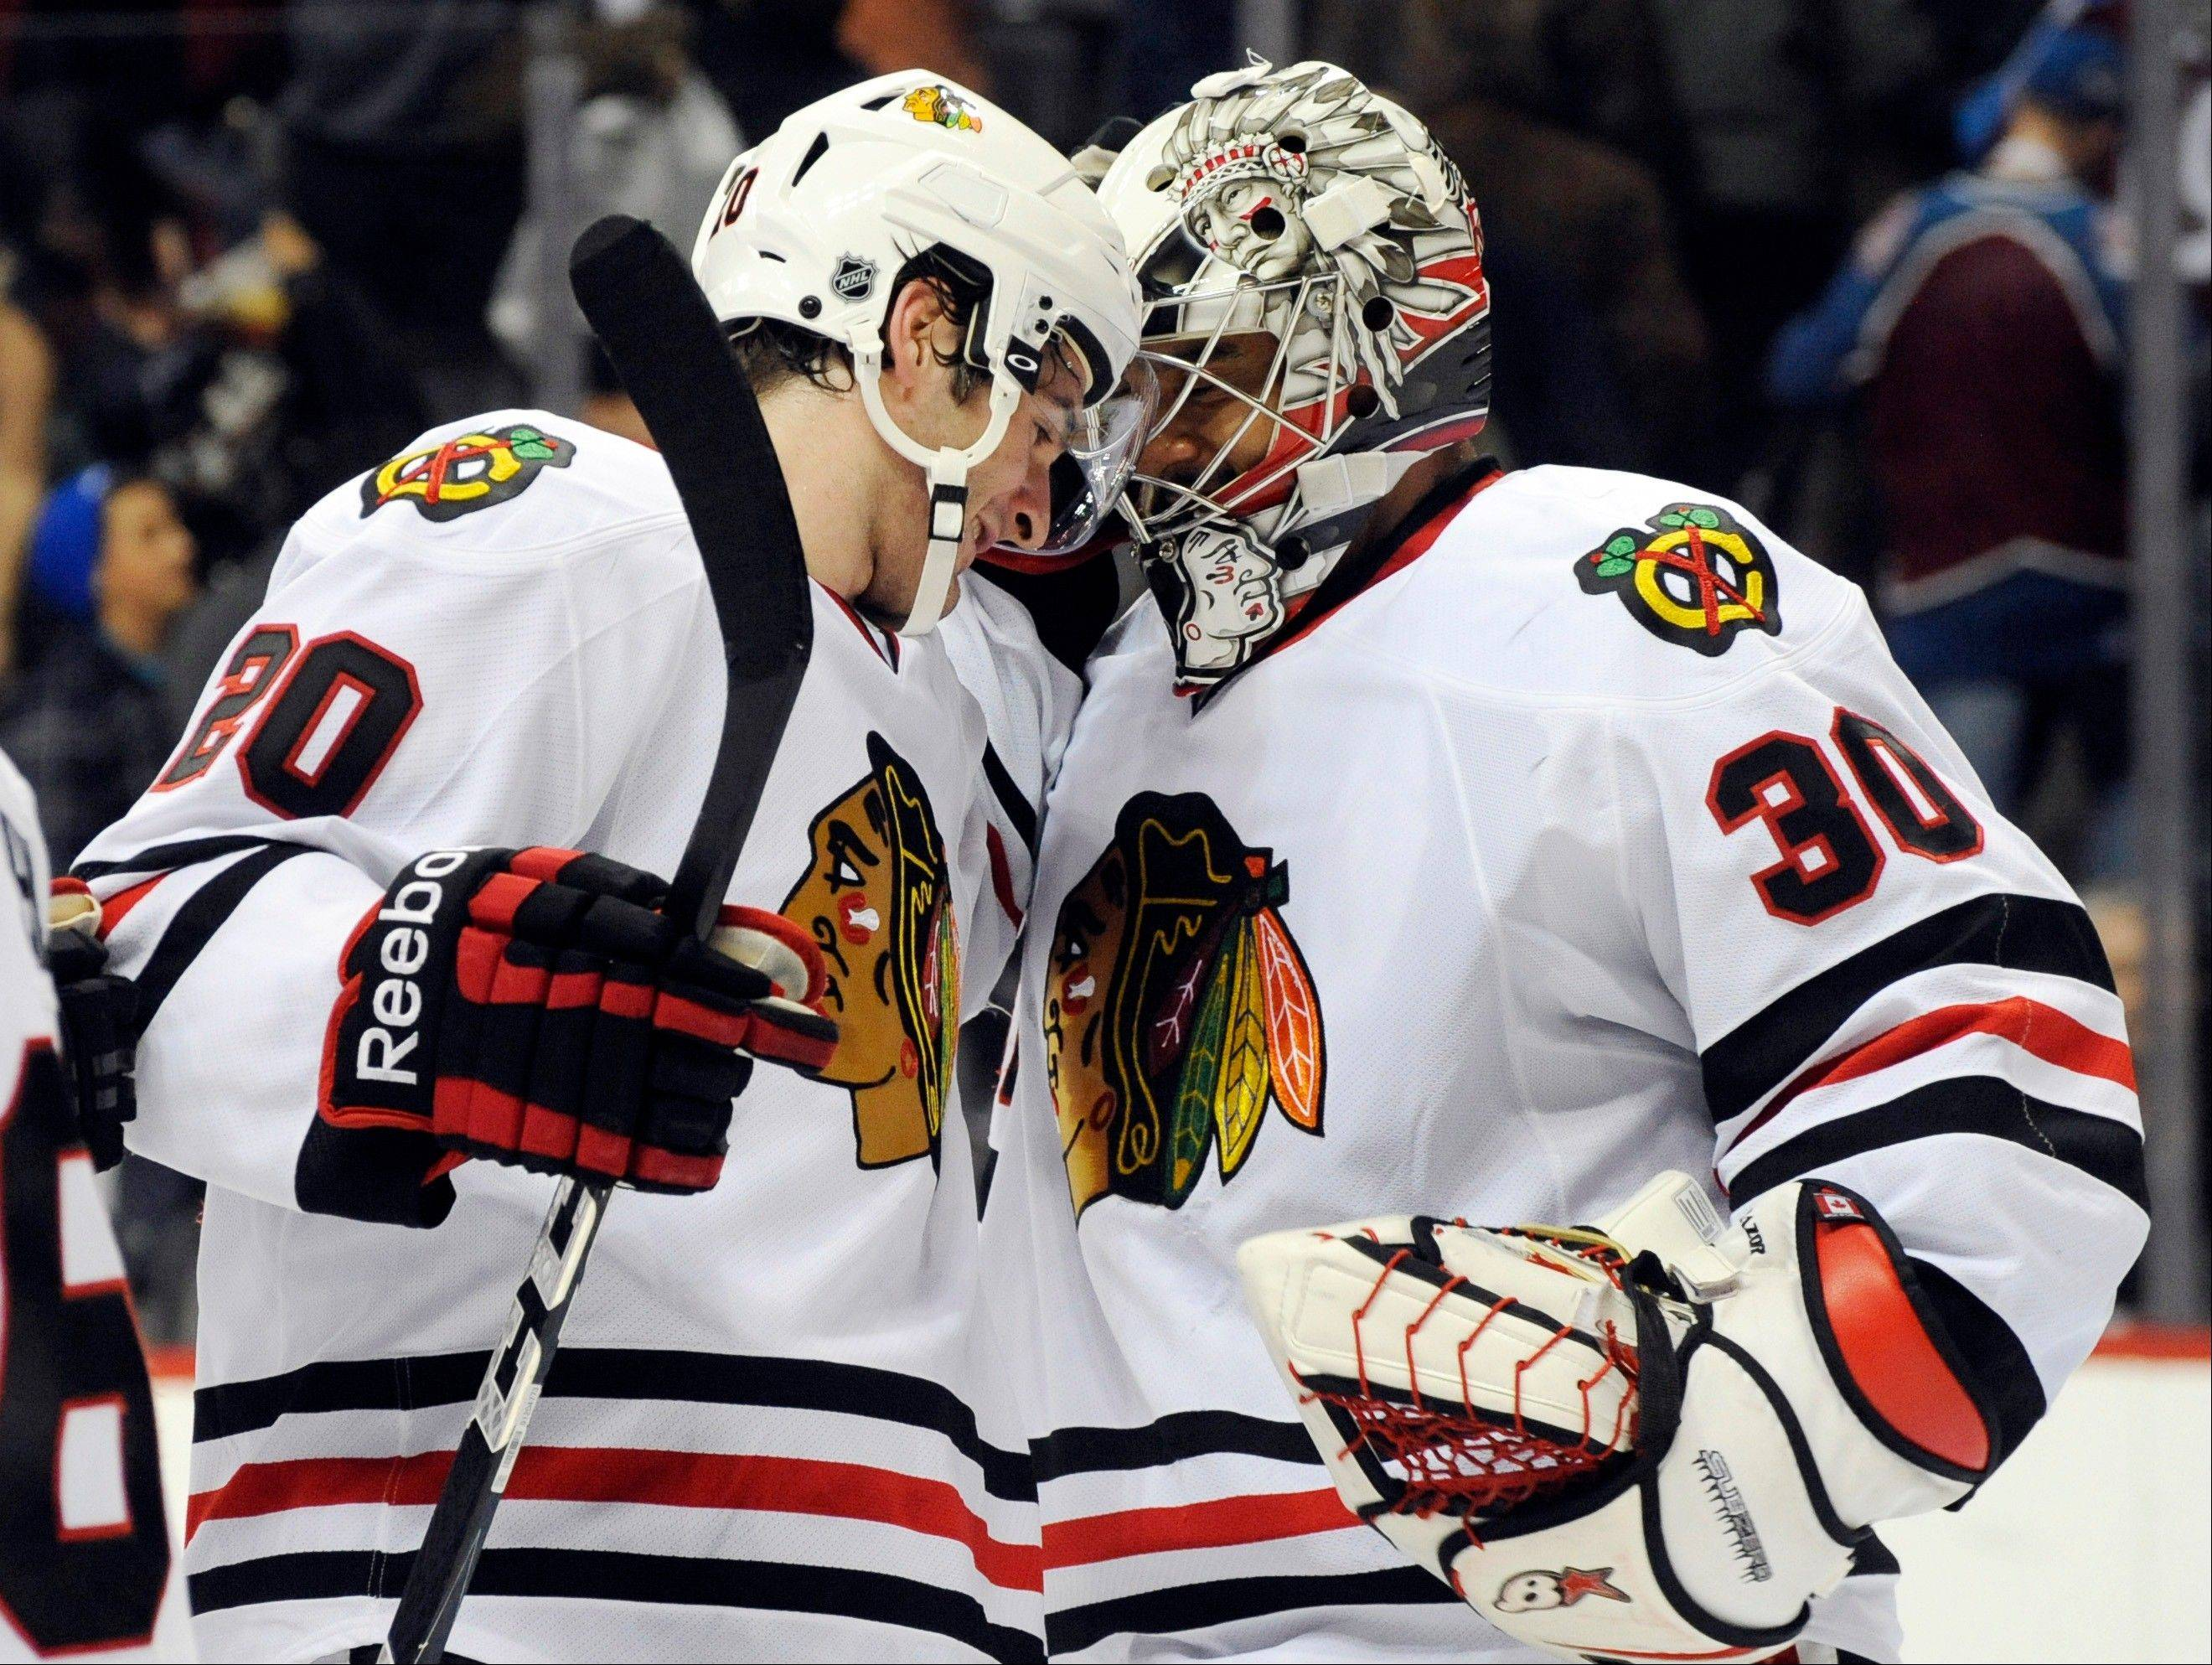 Chicago Blackhawks goalie Ray Emery (30) celebrates a 5-2 victory.